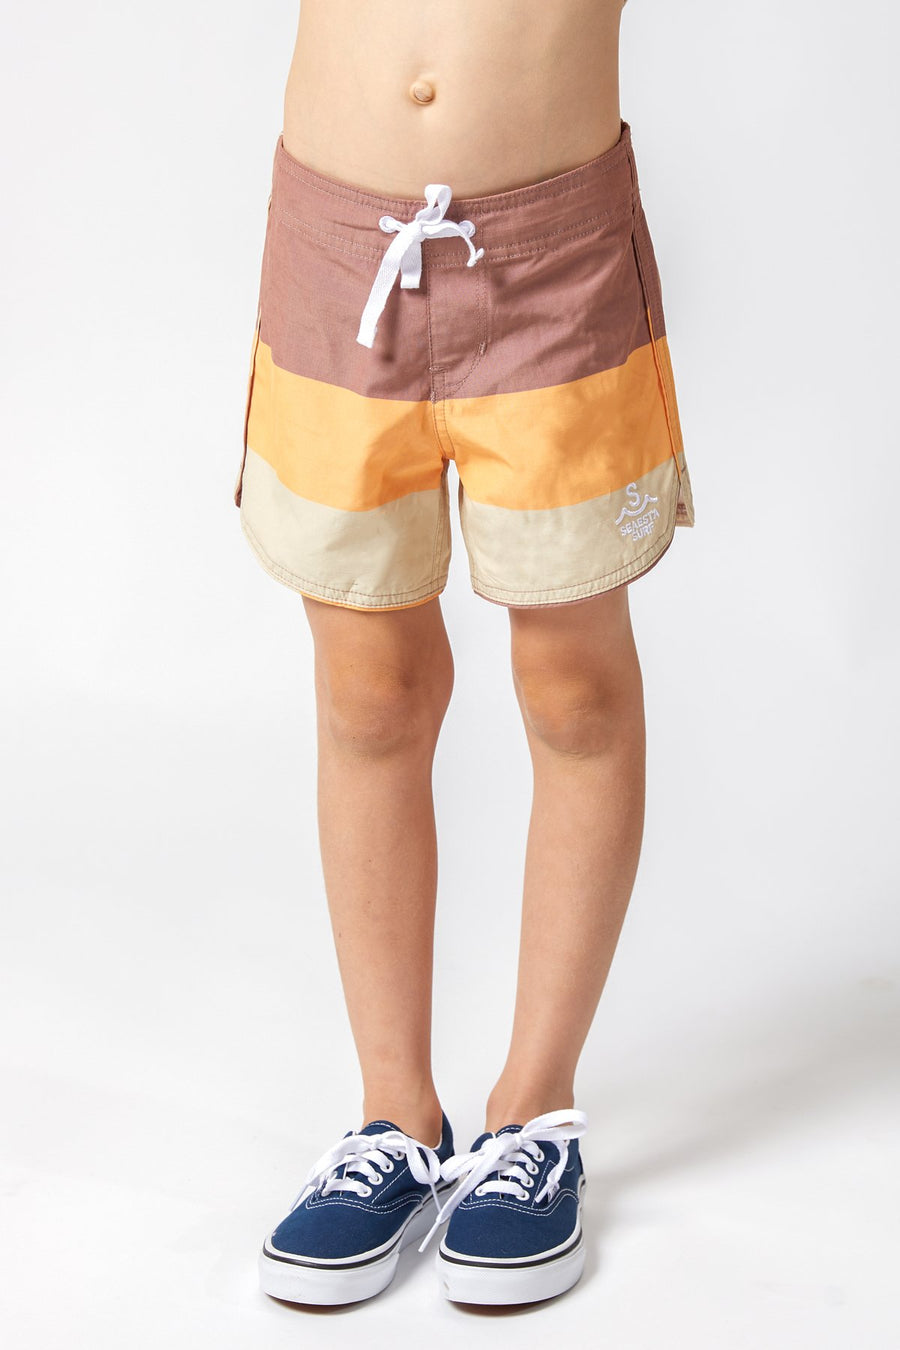 Triple Scoop / Caramel Boardshorts